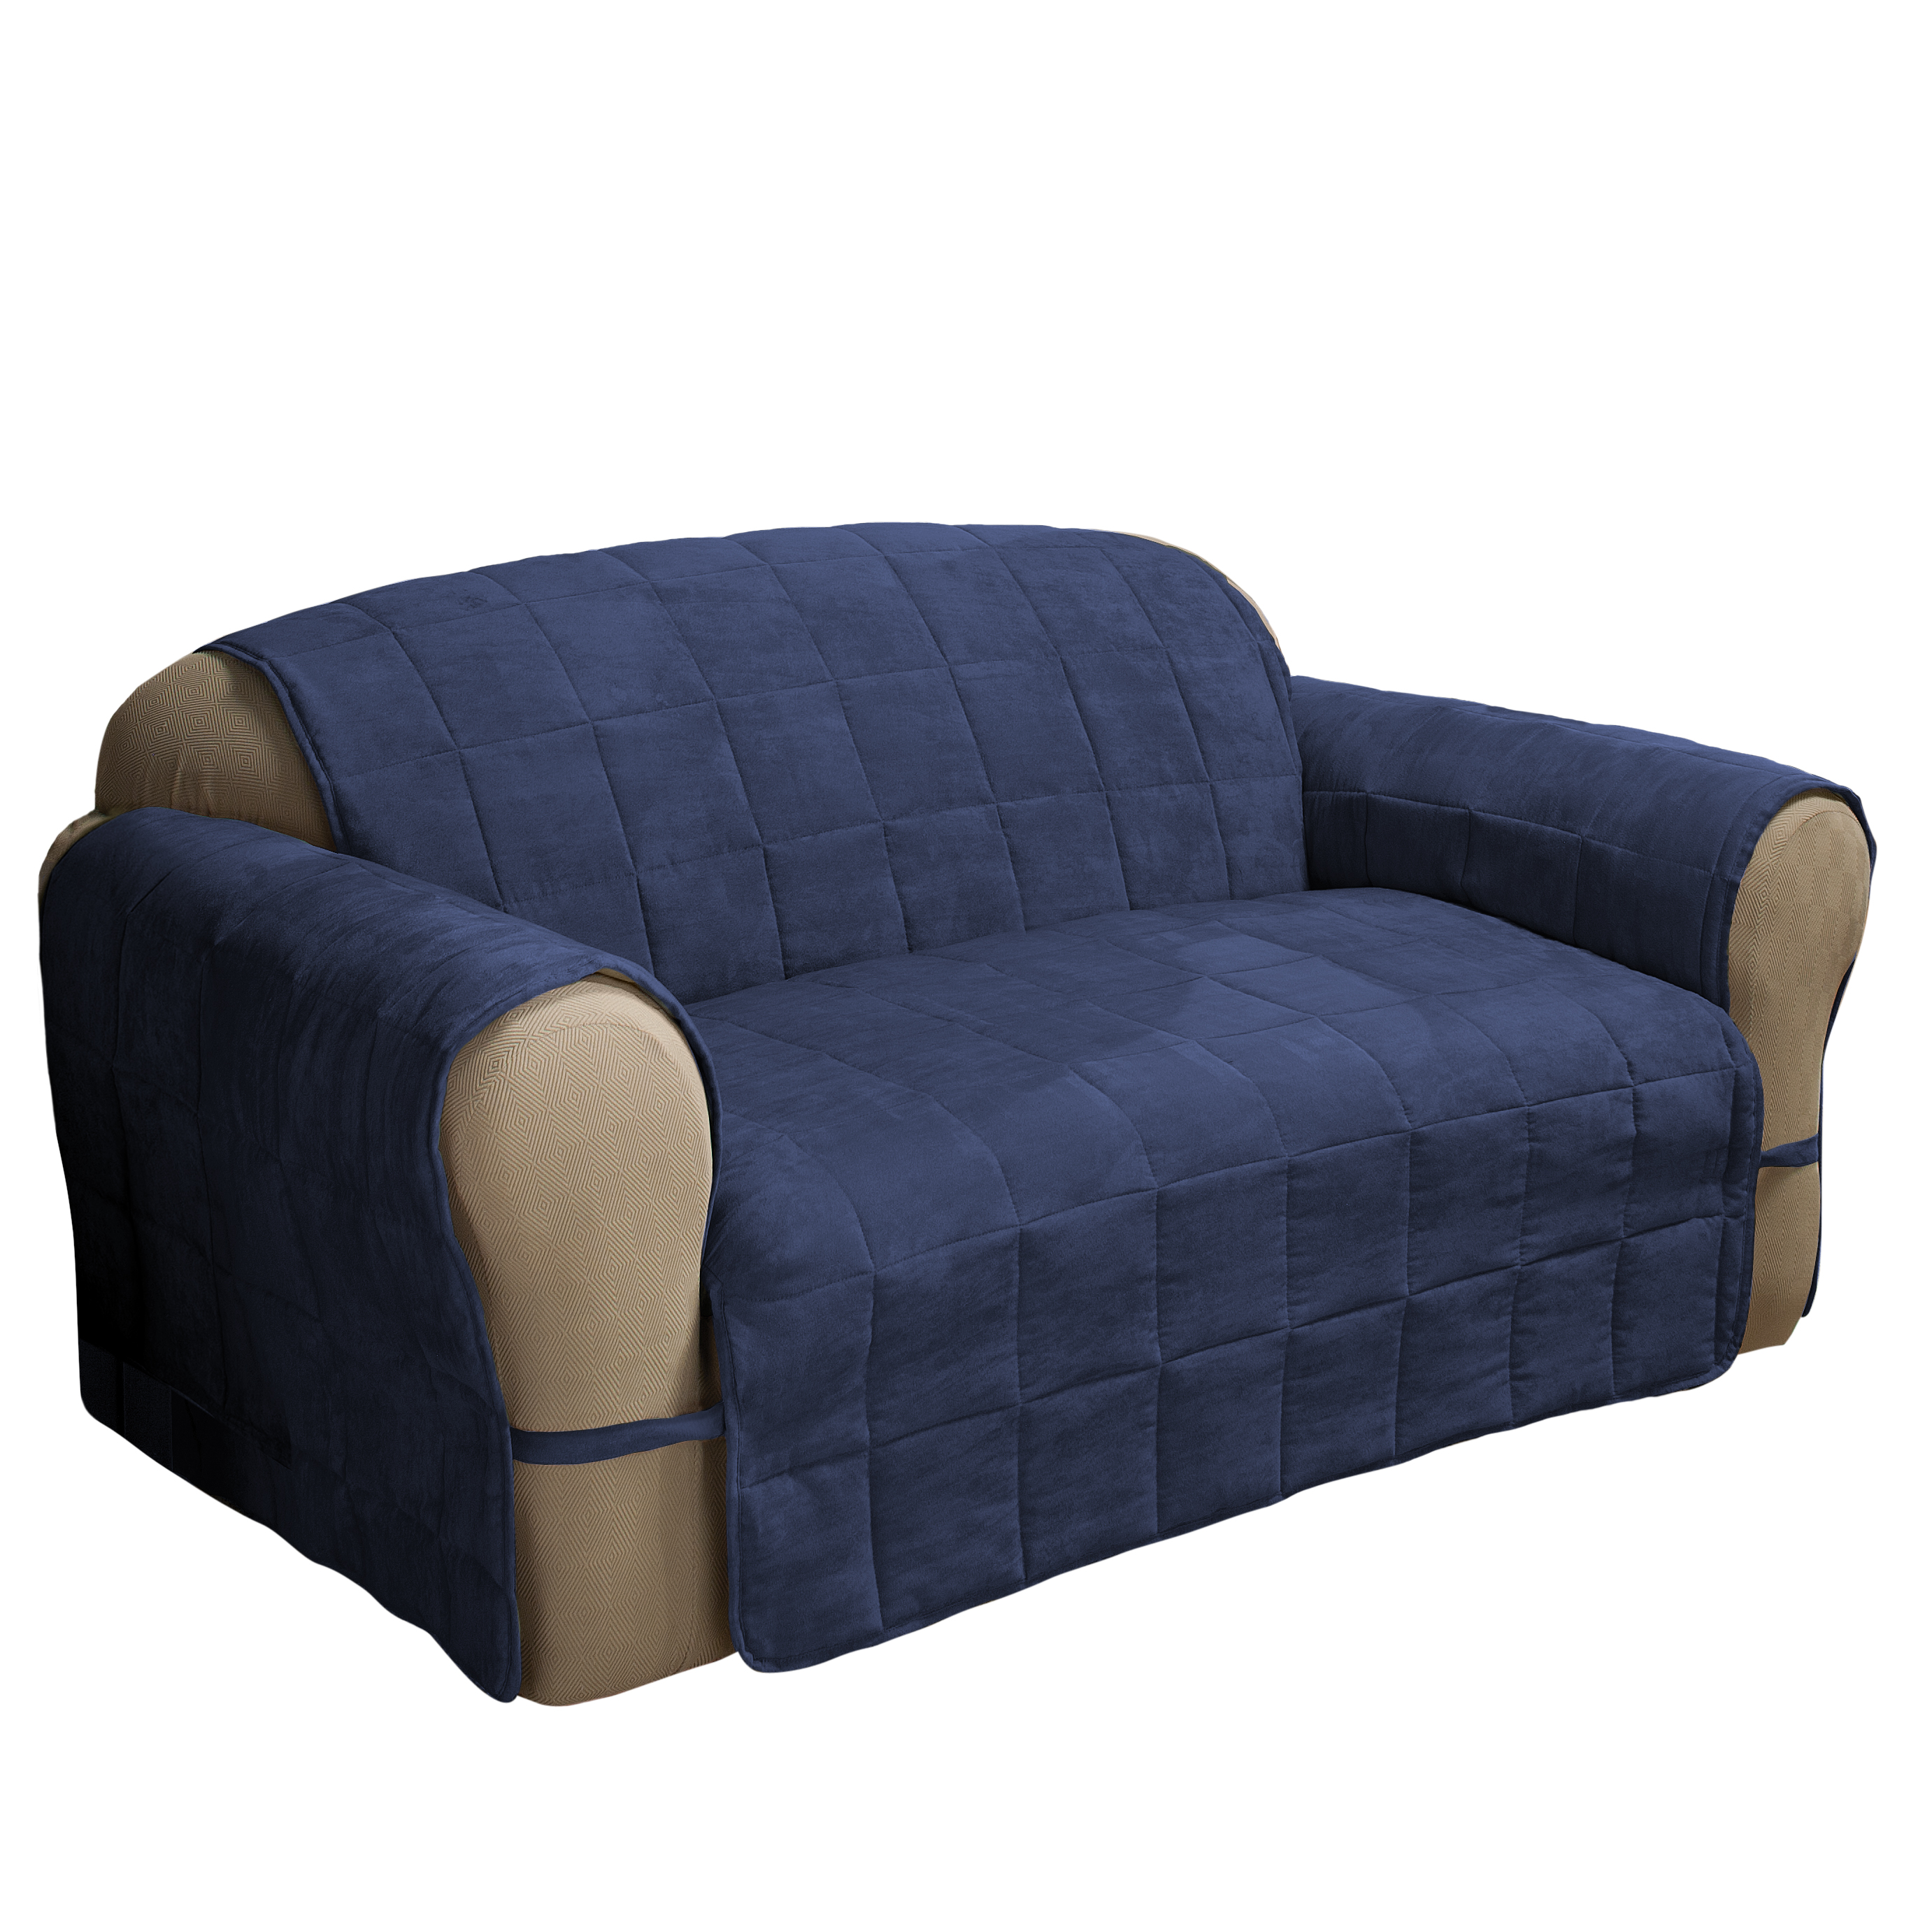 Innovative Textile Solutions Ultimate Faux Suede Sofa